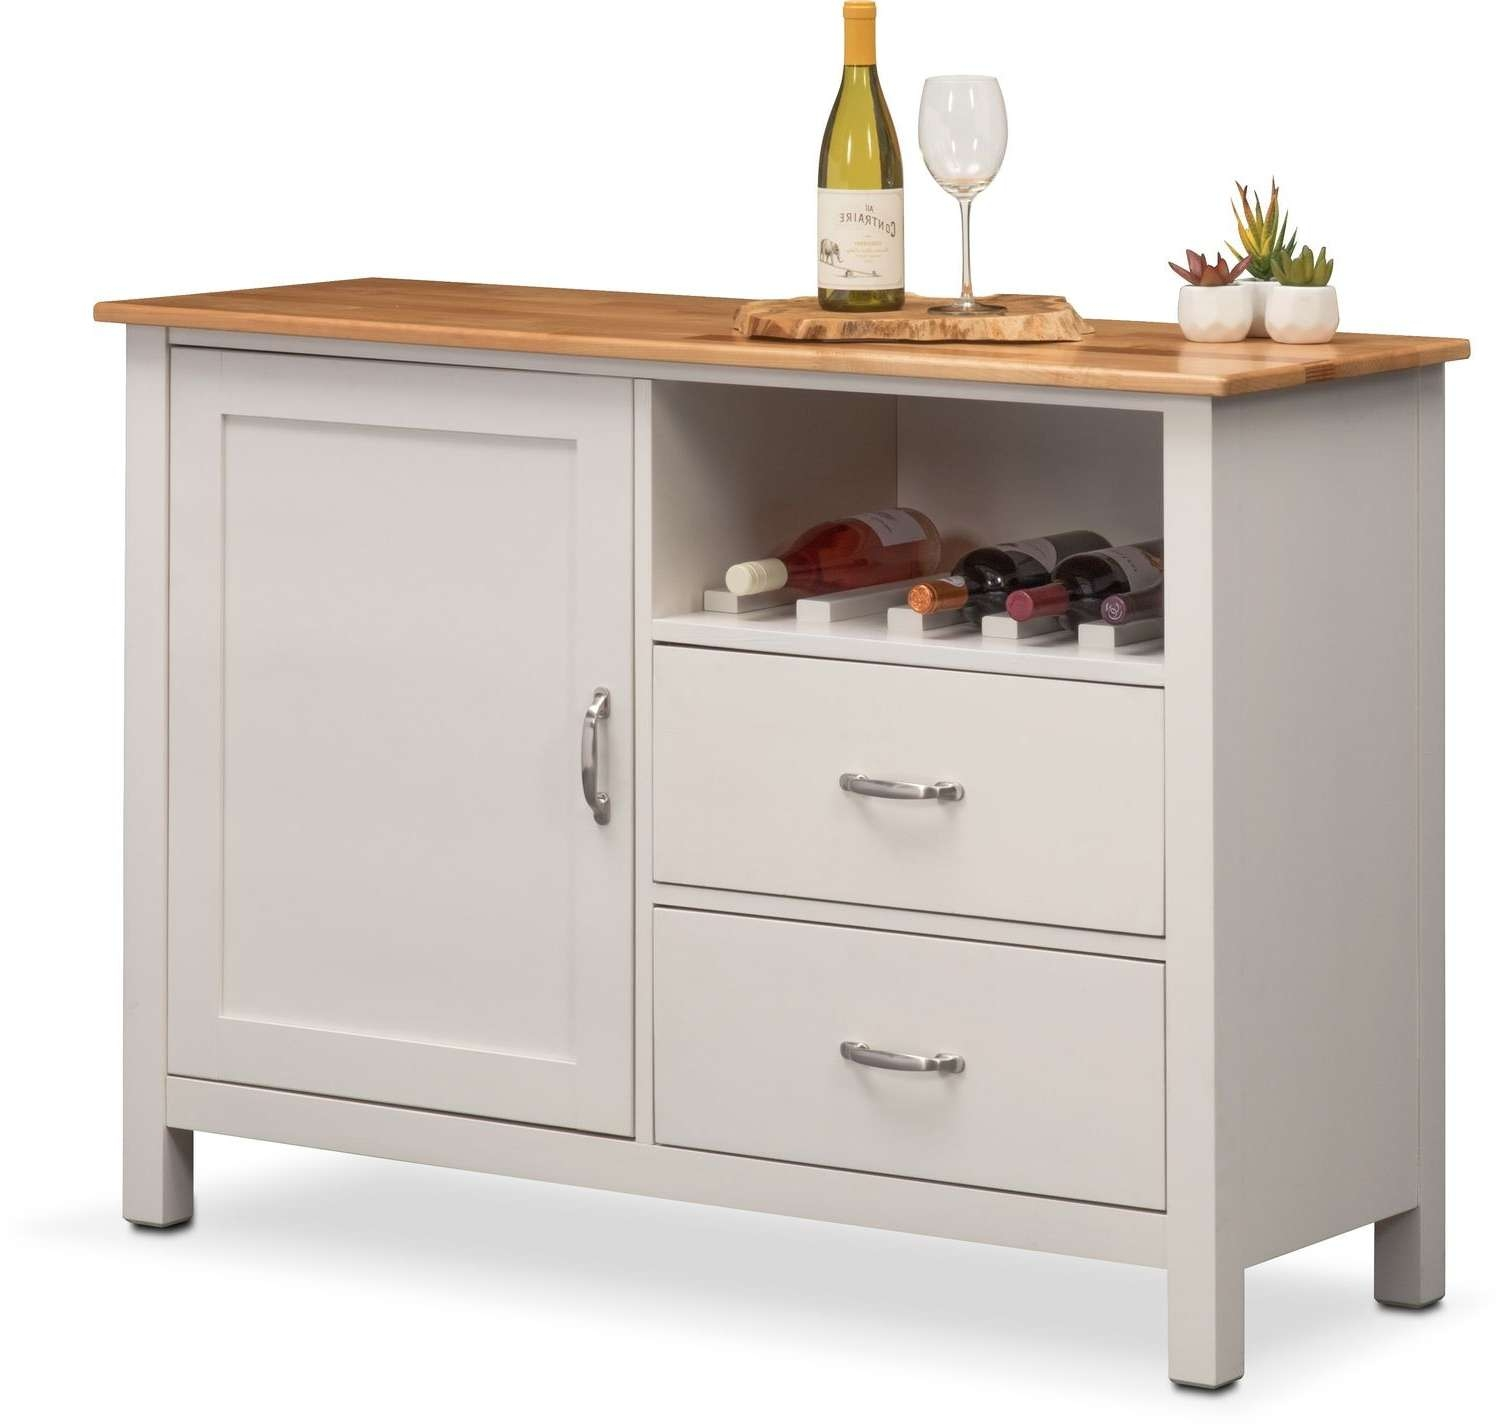 Nantucket Sideboard – Maple And White | Value City Furniture And Inside Maple Sideboards (View 10 of 20)